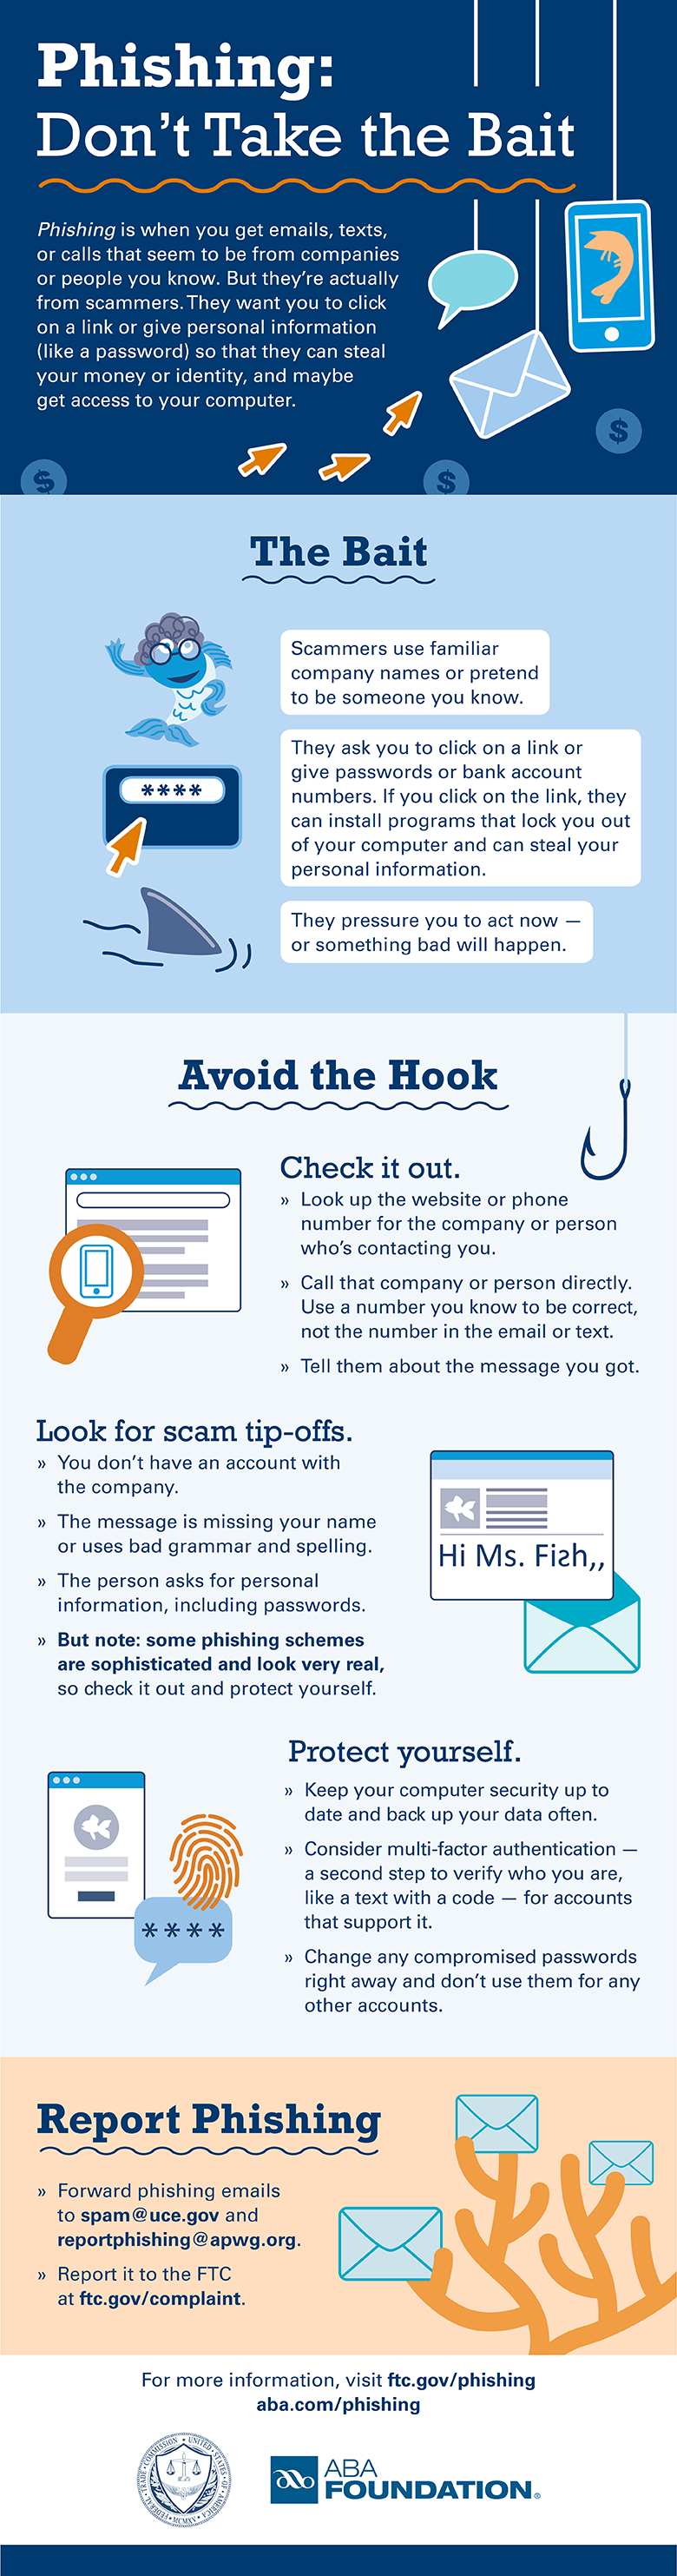 How to Recognize and Avoid Phishing Scams | Consumer Information